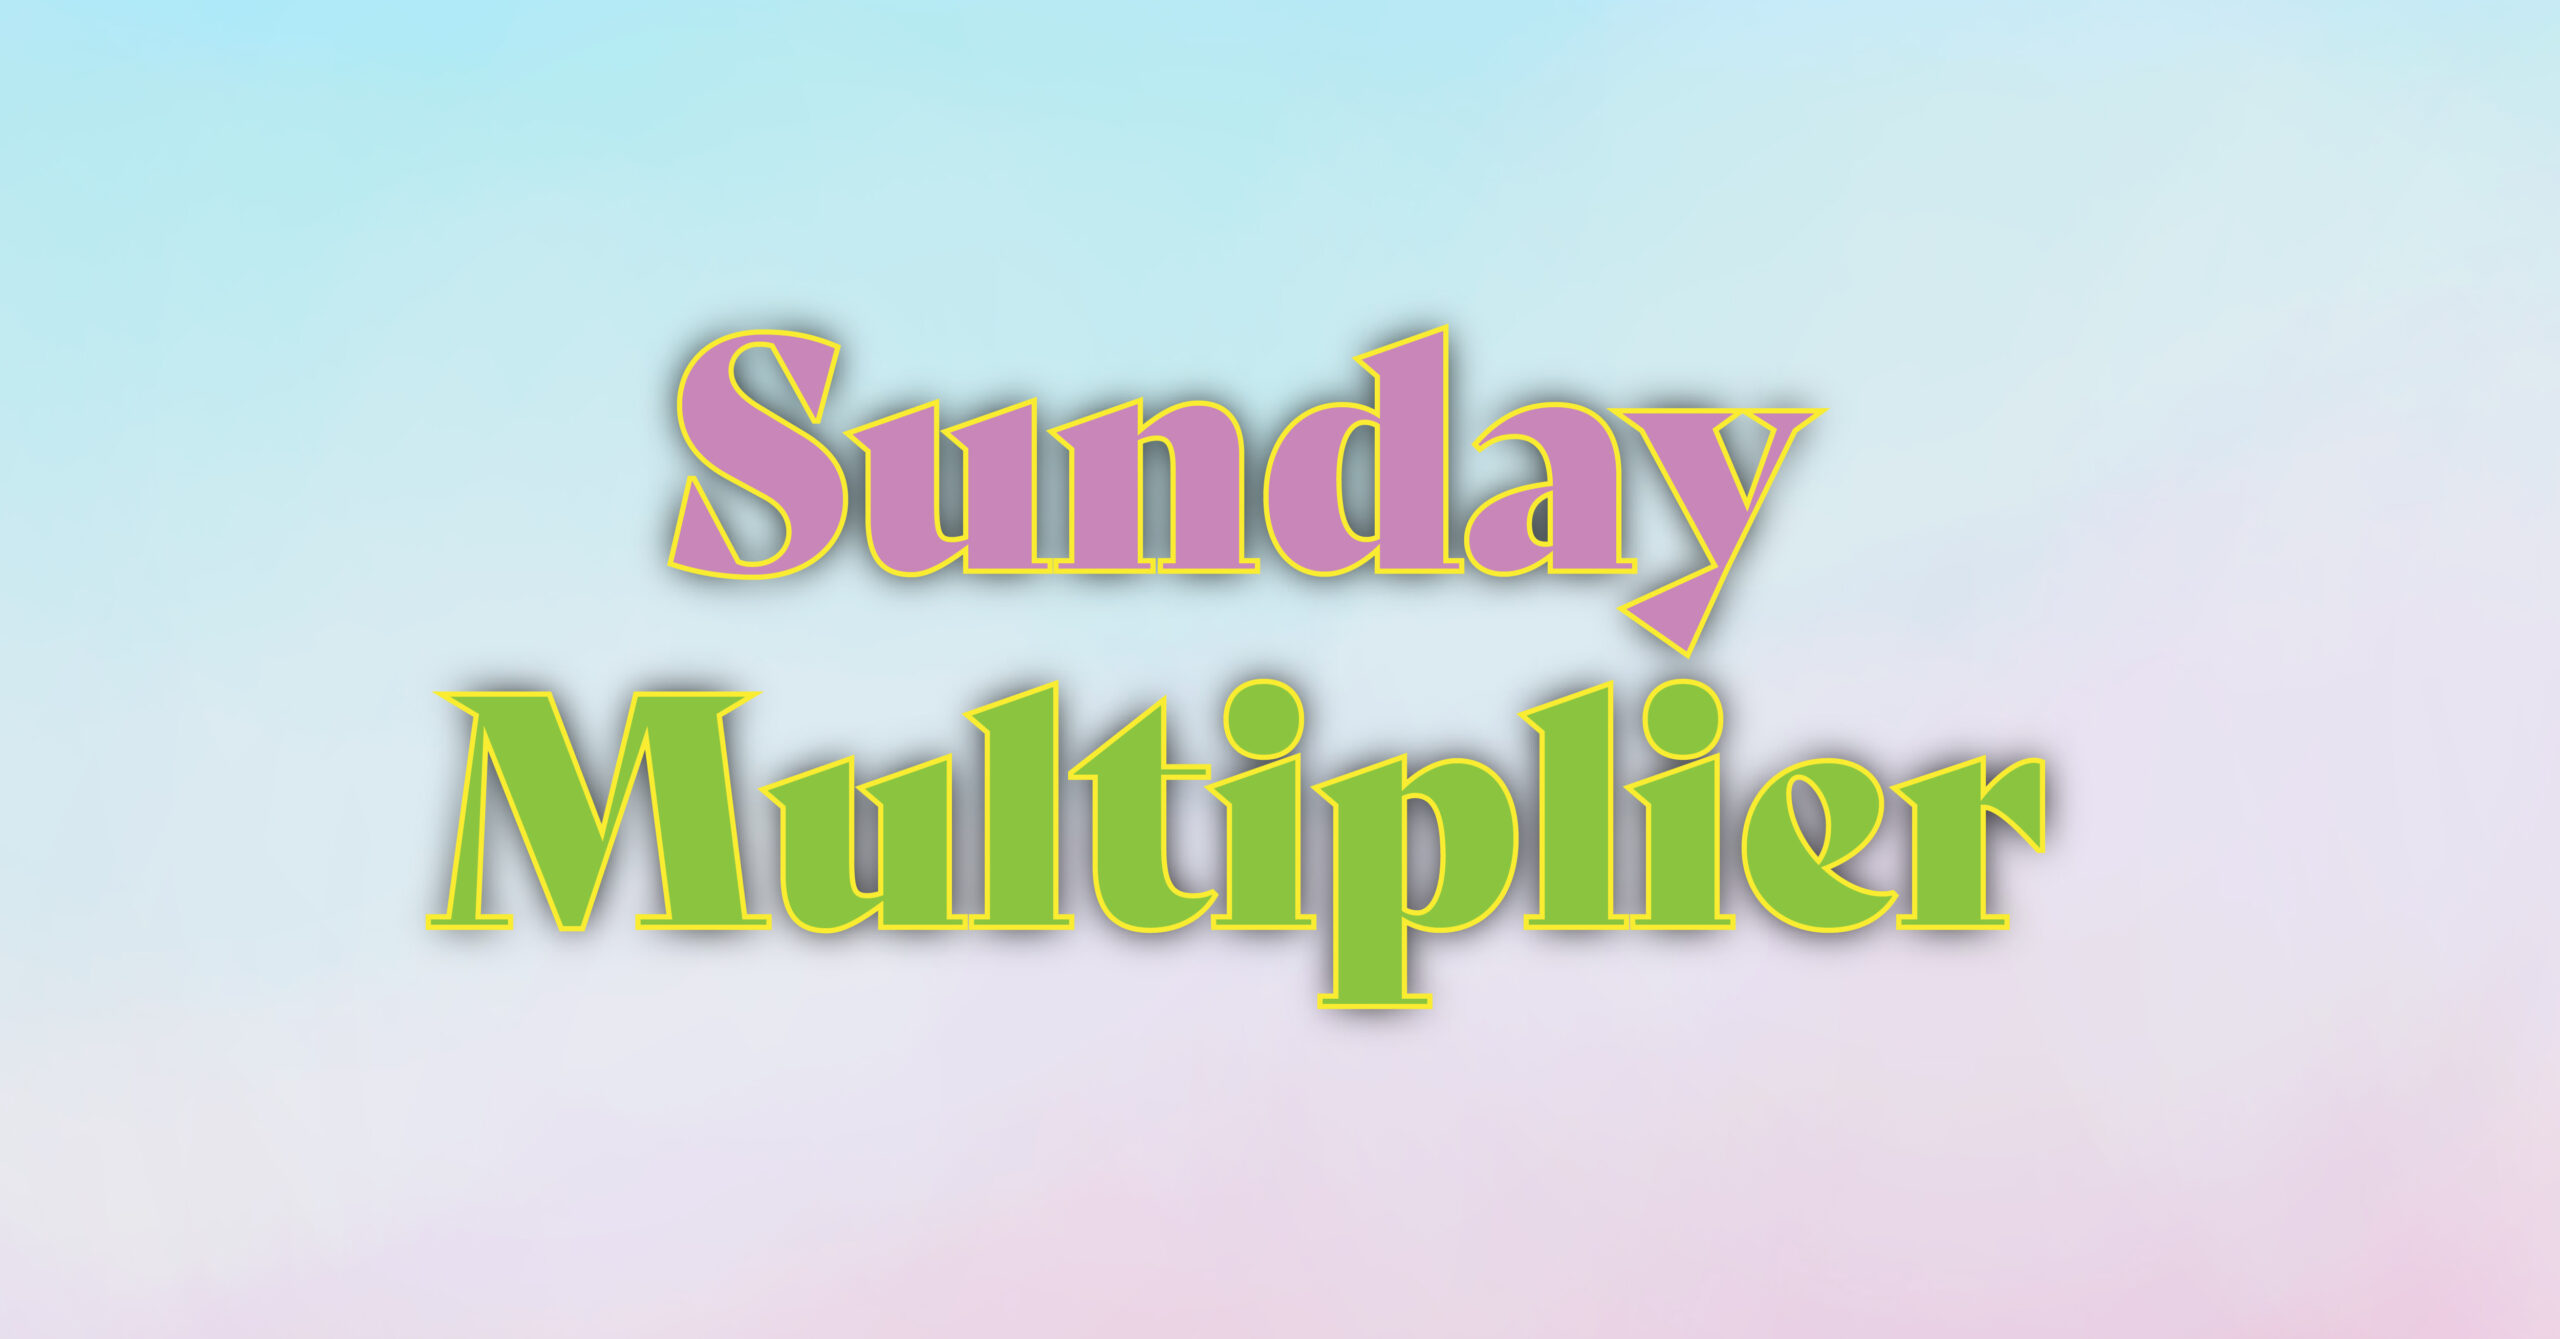 SUNDAY MULTIPLIER